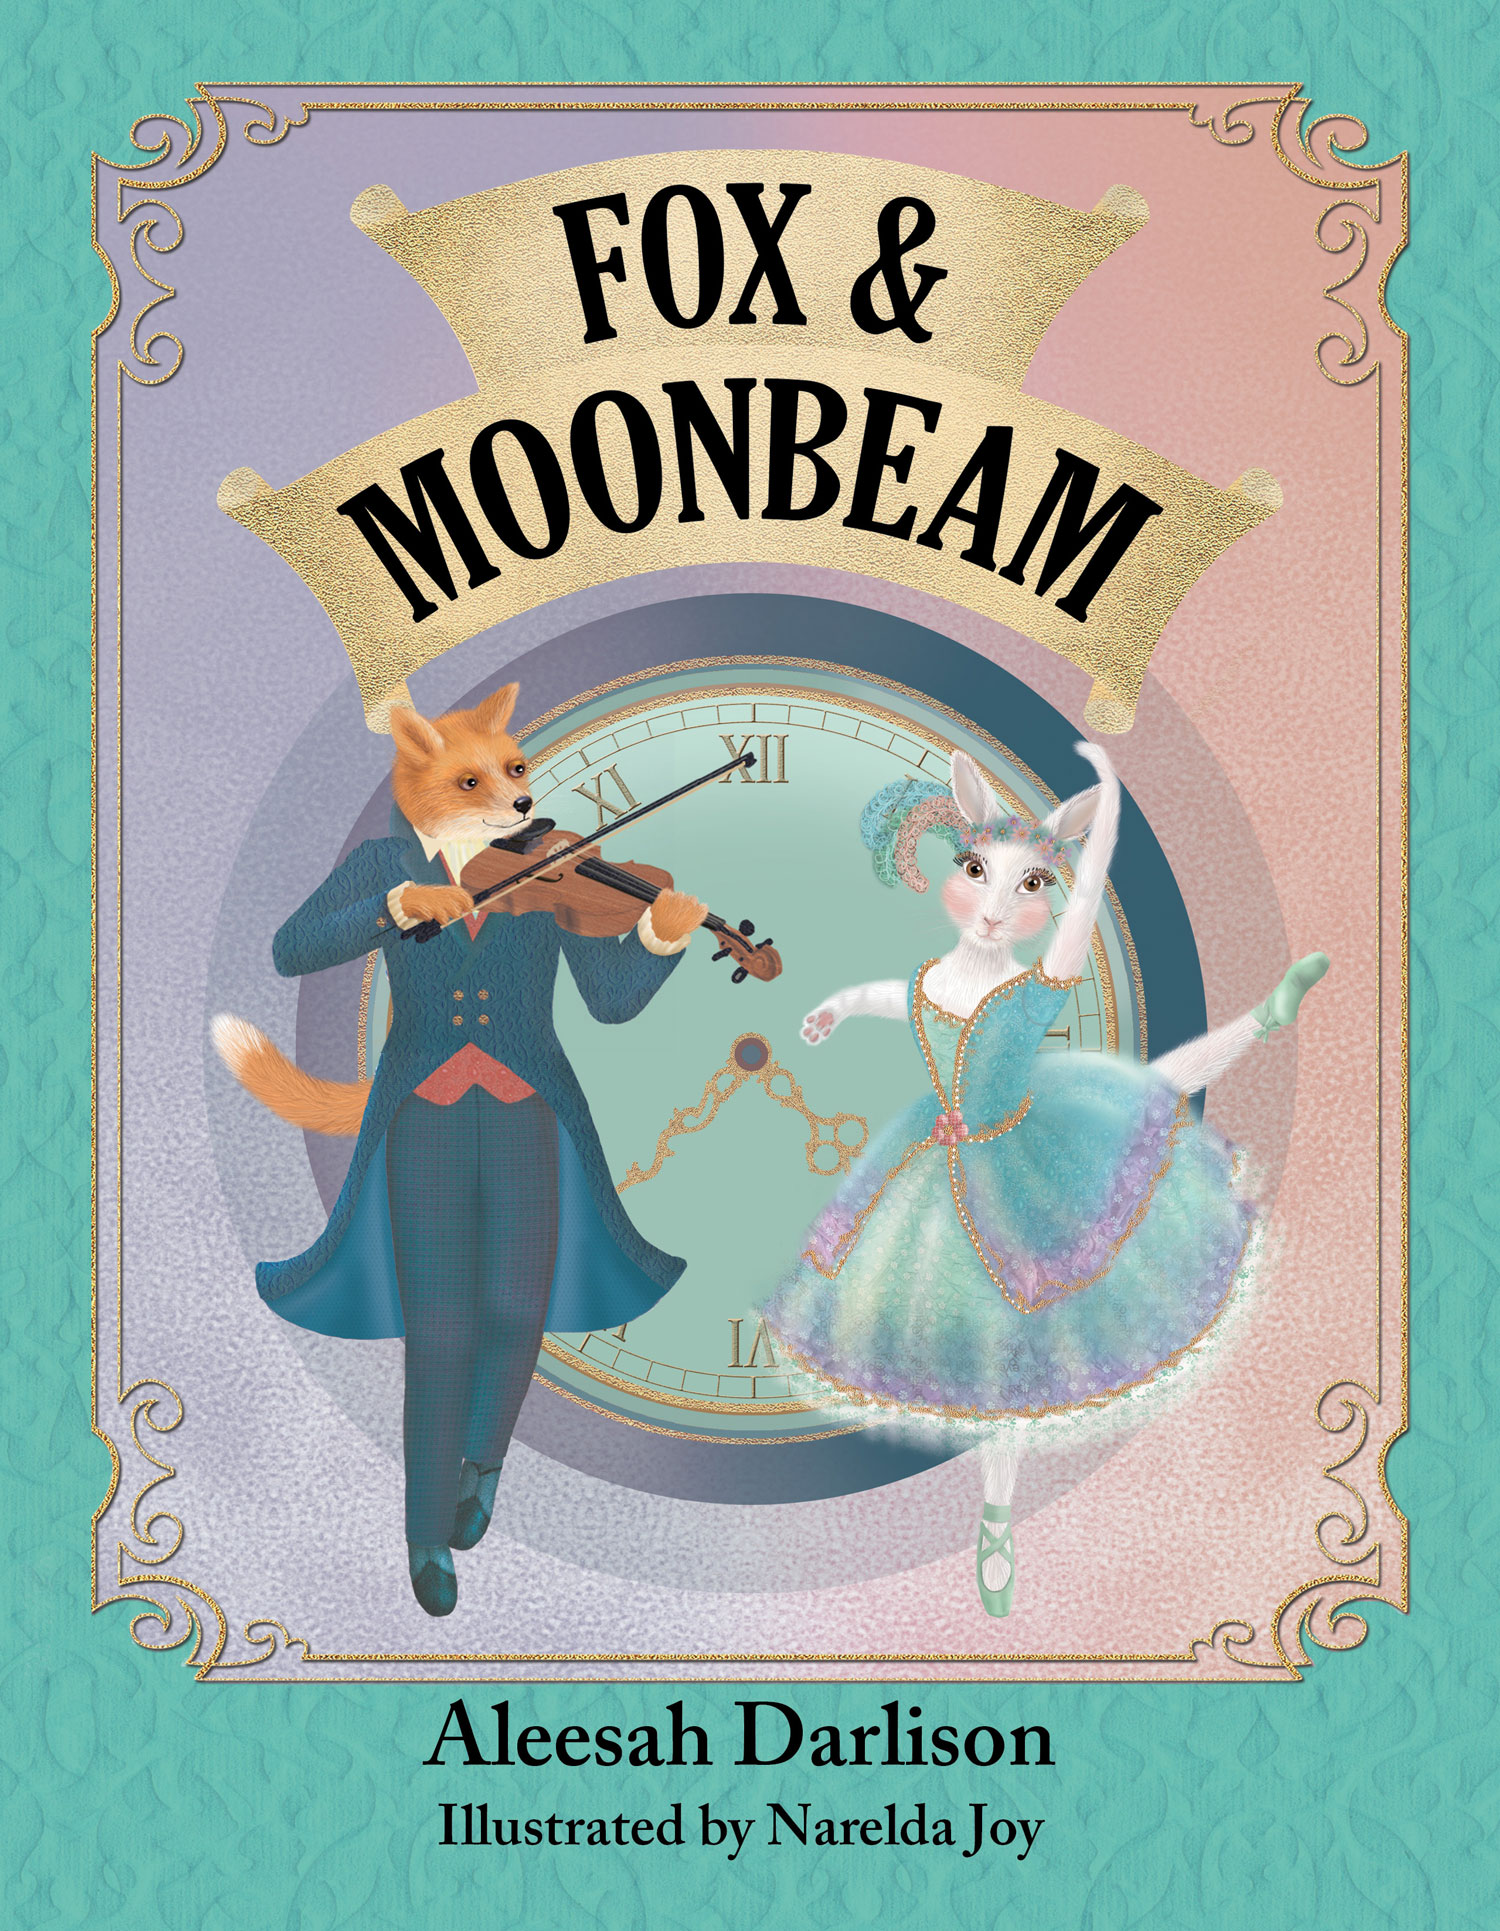 foxandmoonbeanmed